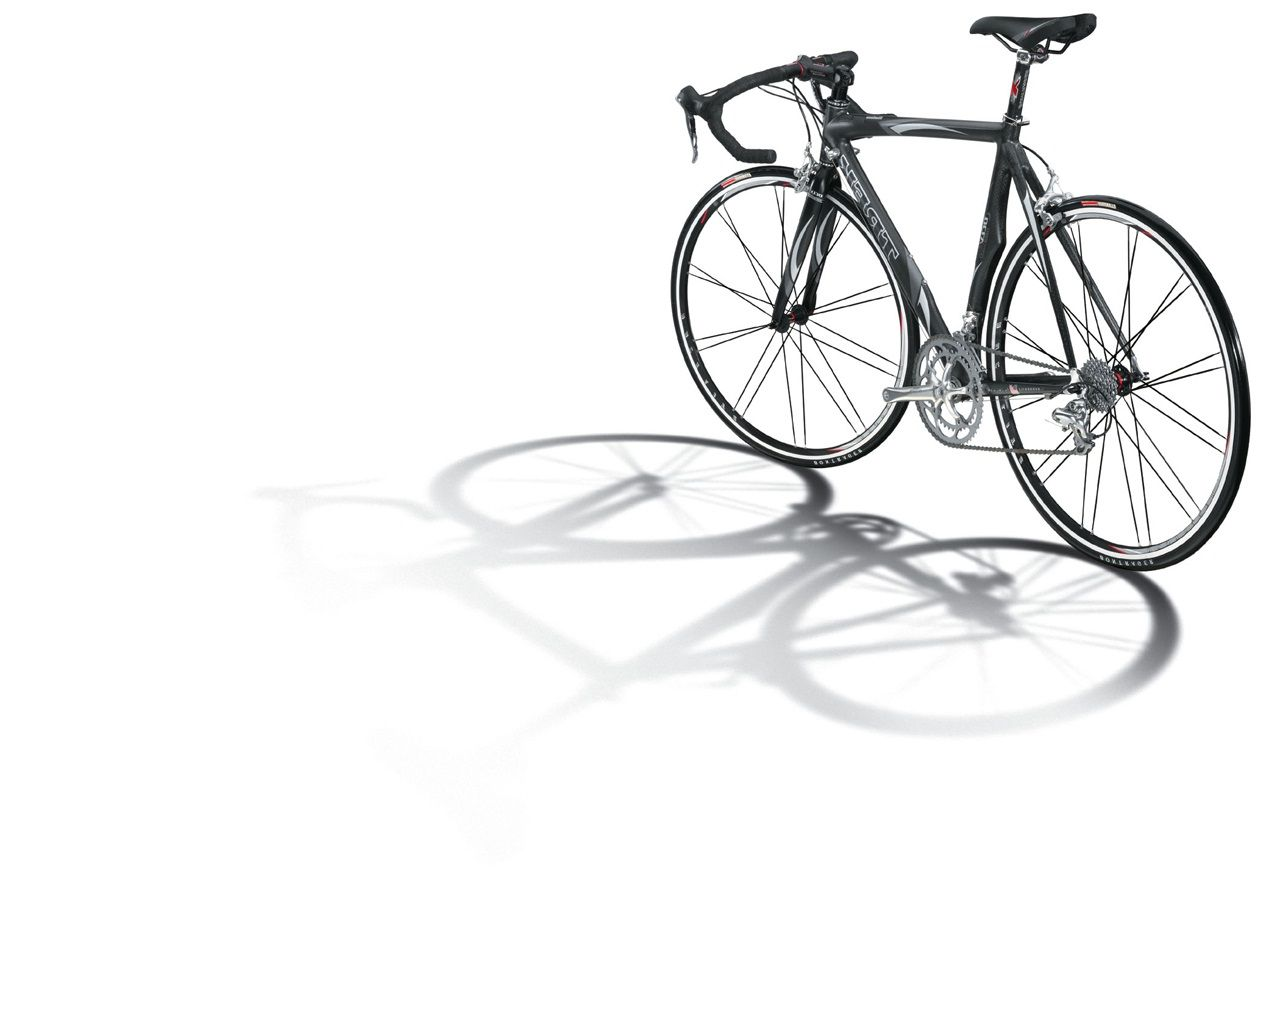 Bicycle Art Images Is 4k Wallpaper